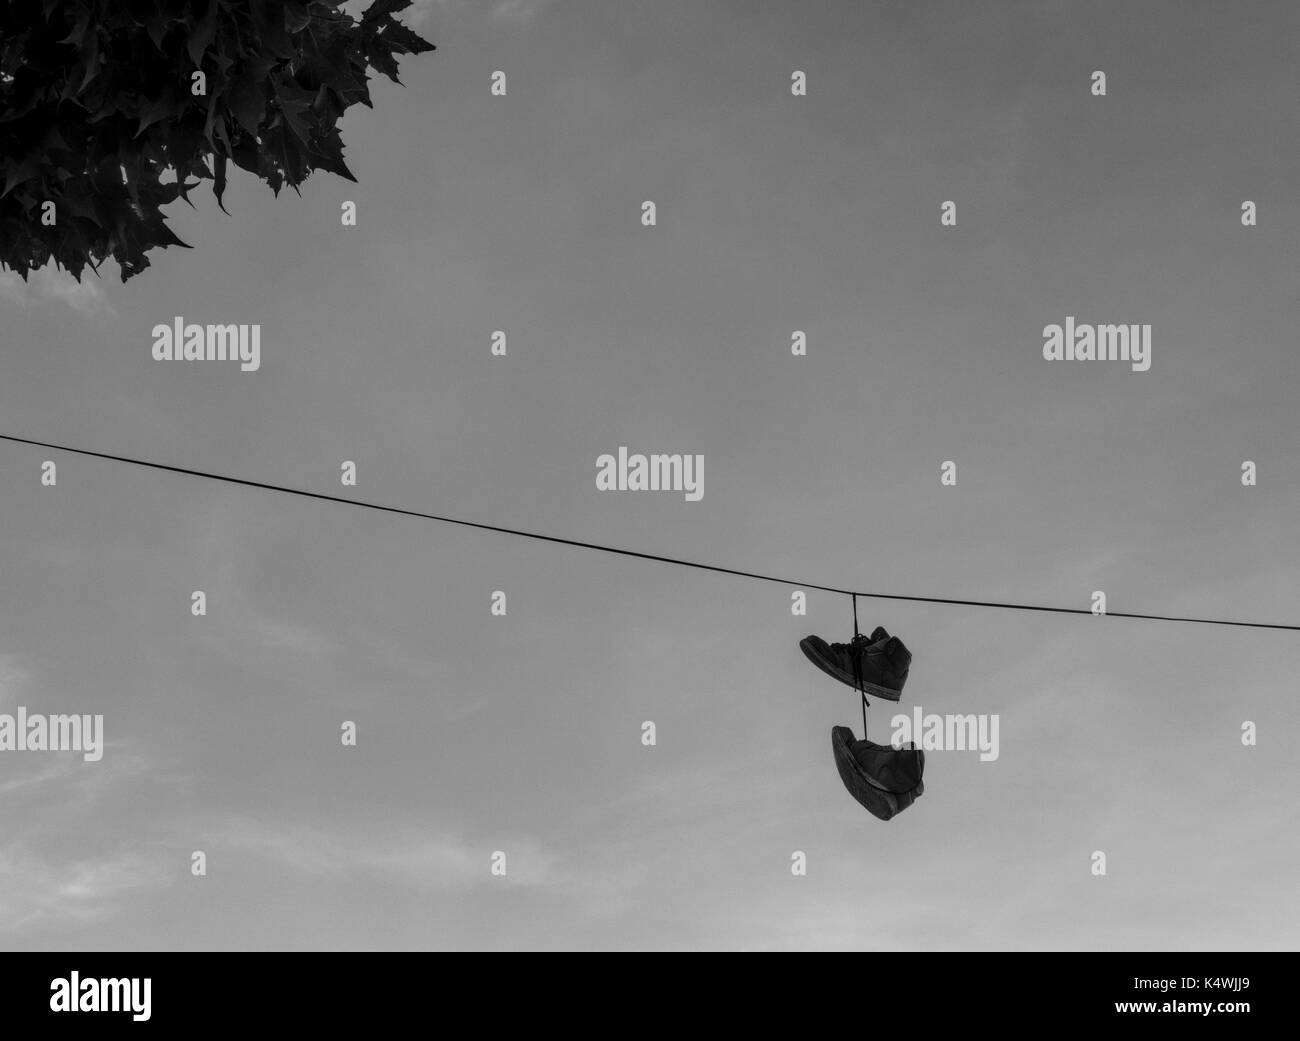 Shoes Hanging From Wire Stock Photos & Shoes Hanging From Wire Stock ...